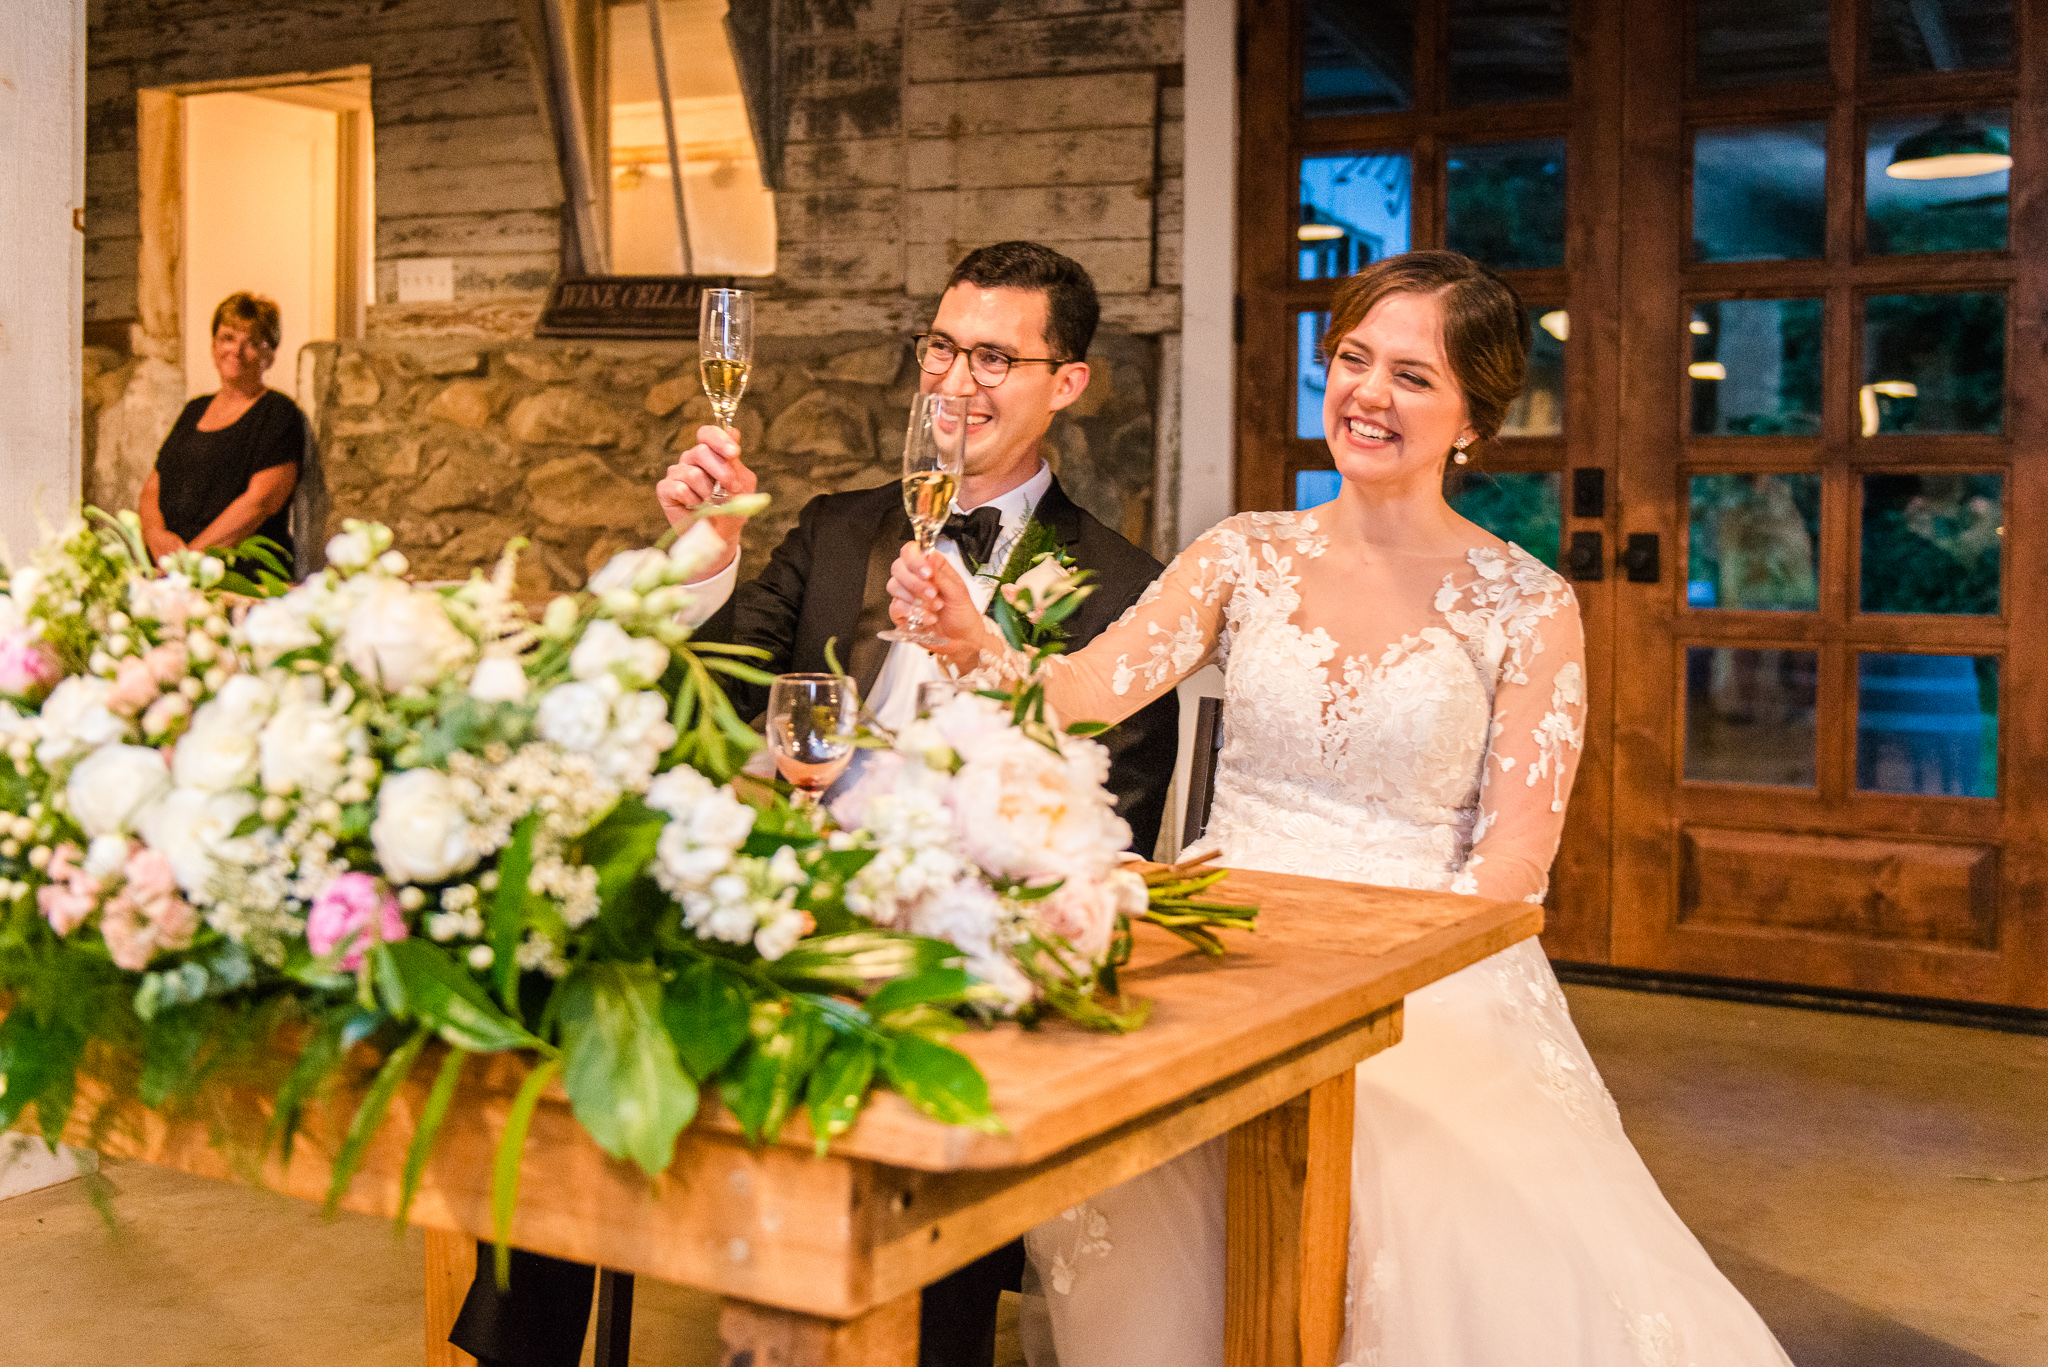 A bride and groom laugh as they raise their champagne glasses for the toasts during their wedding reception at The Barns at Hamilton Station Vineyards in Leesburg, Northern Virginia